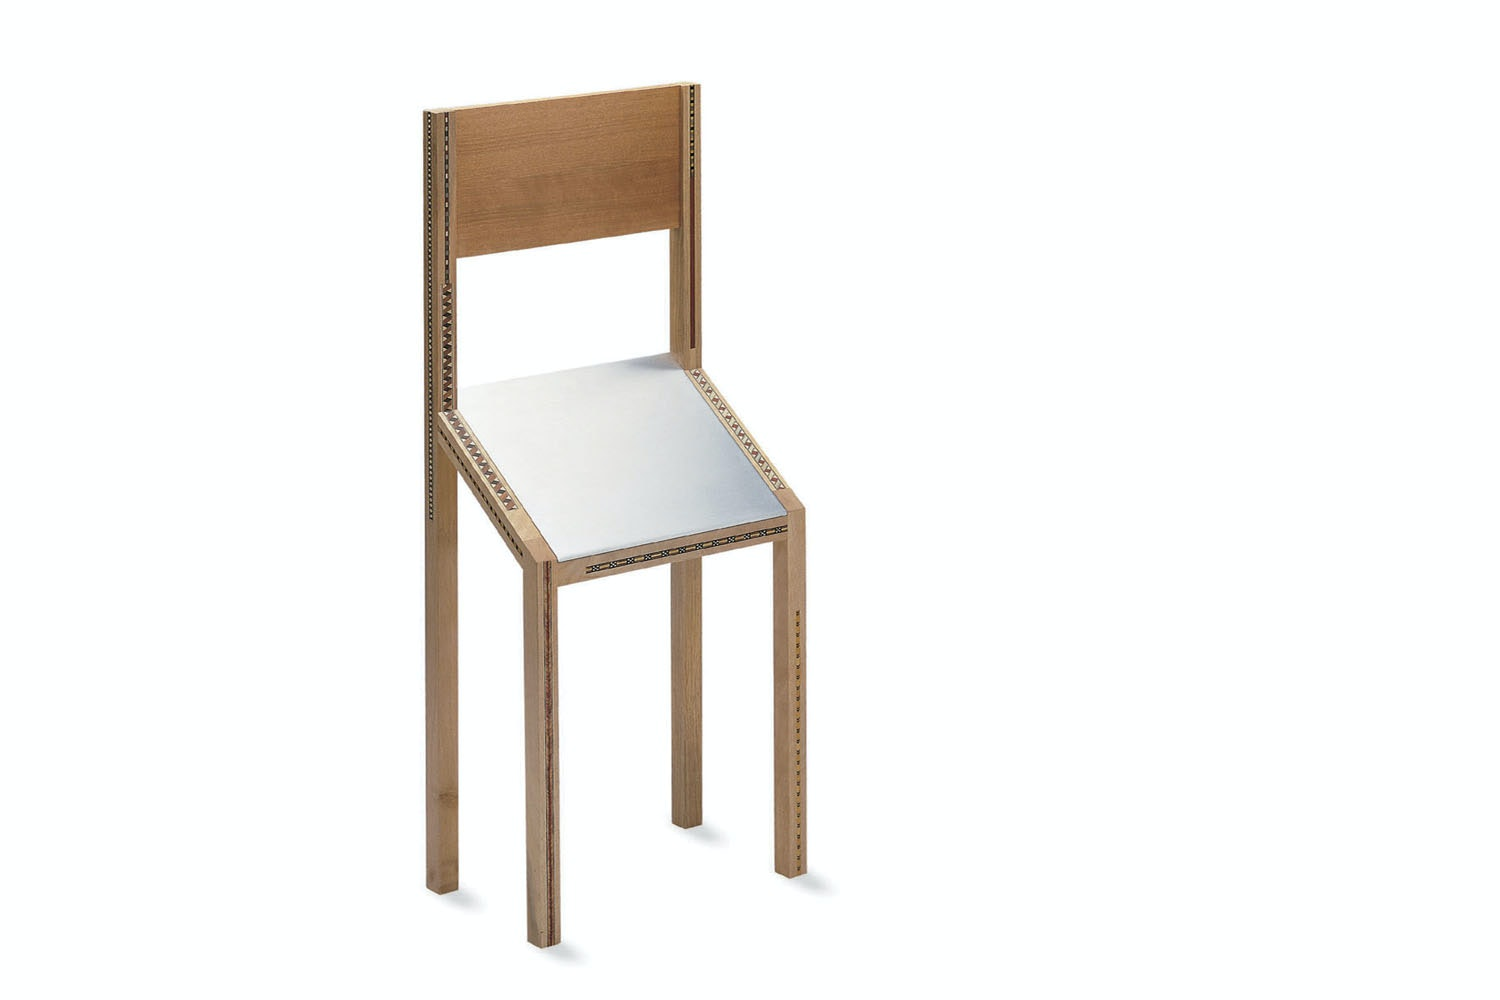 Edizioni Singer Chair by Bruno Munari for Zanotta